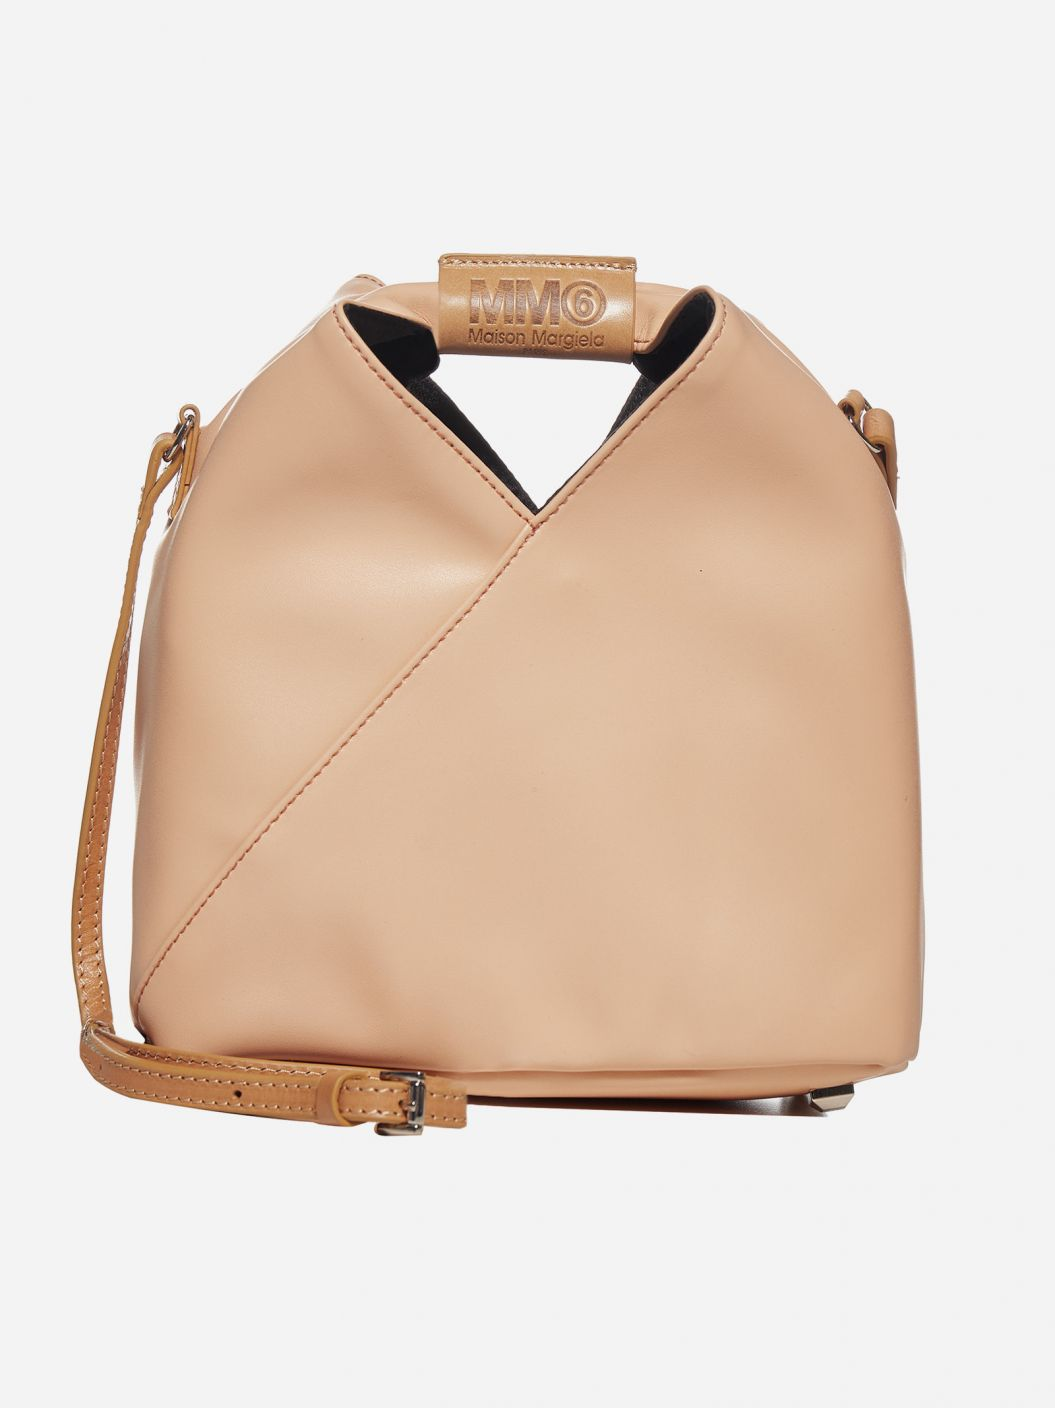 New Japanese faux-leather bag